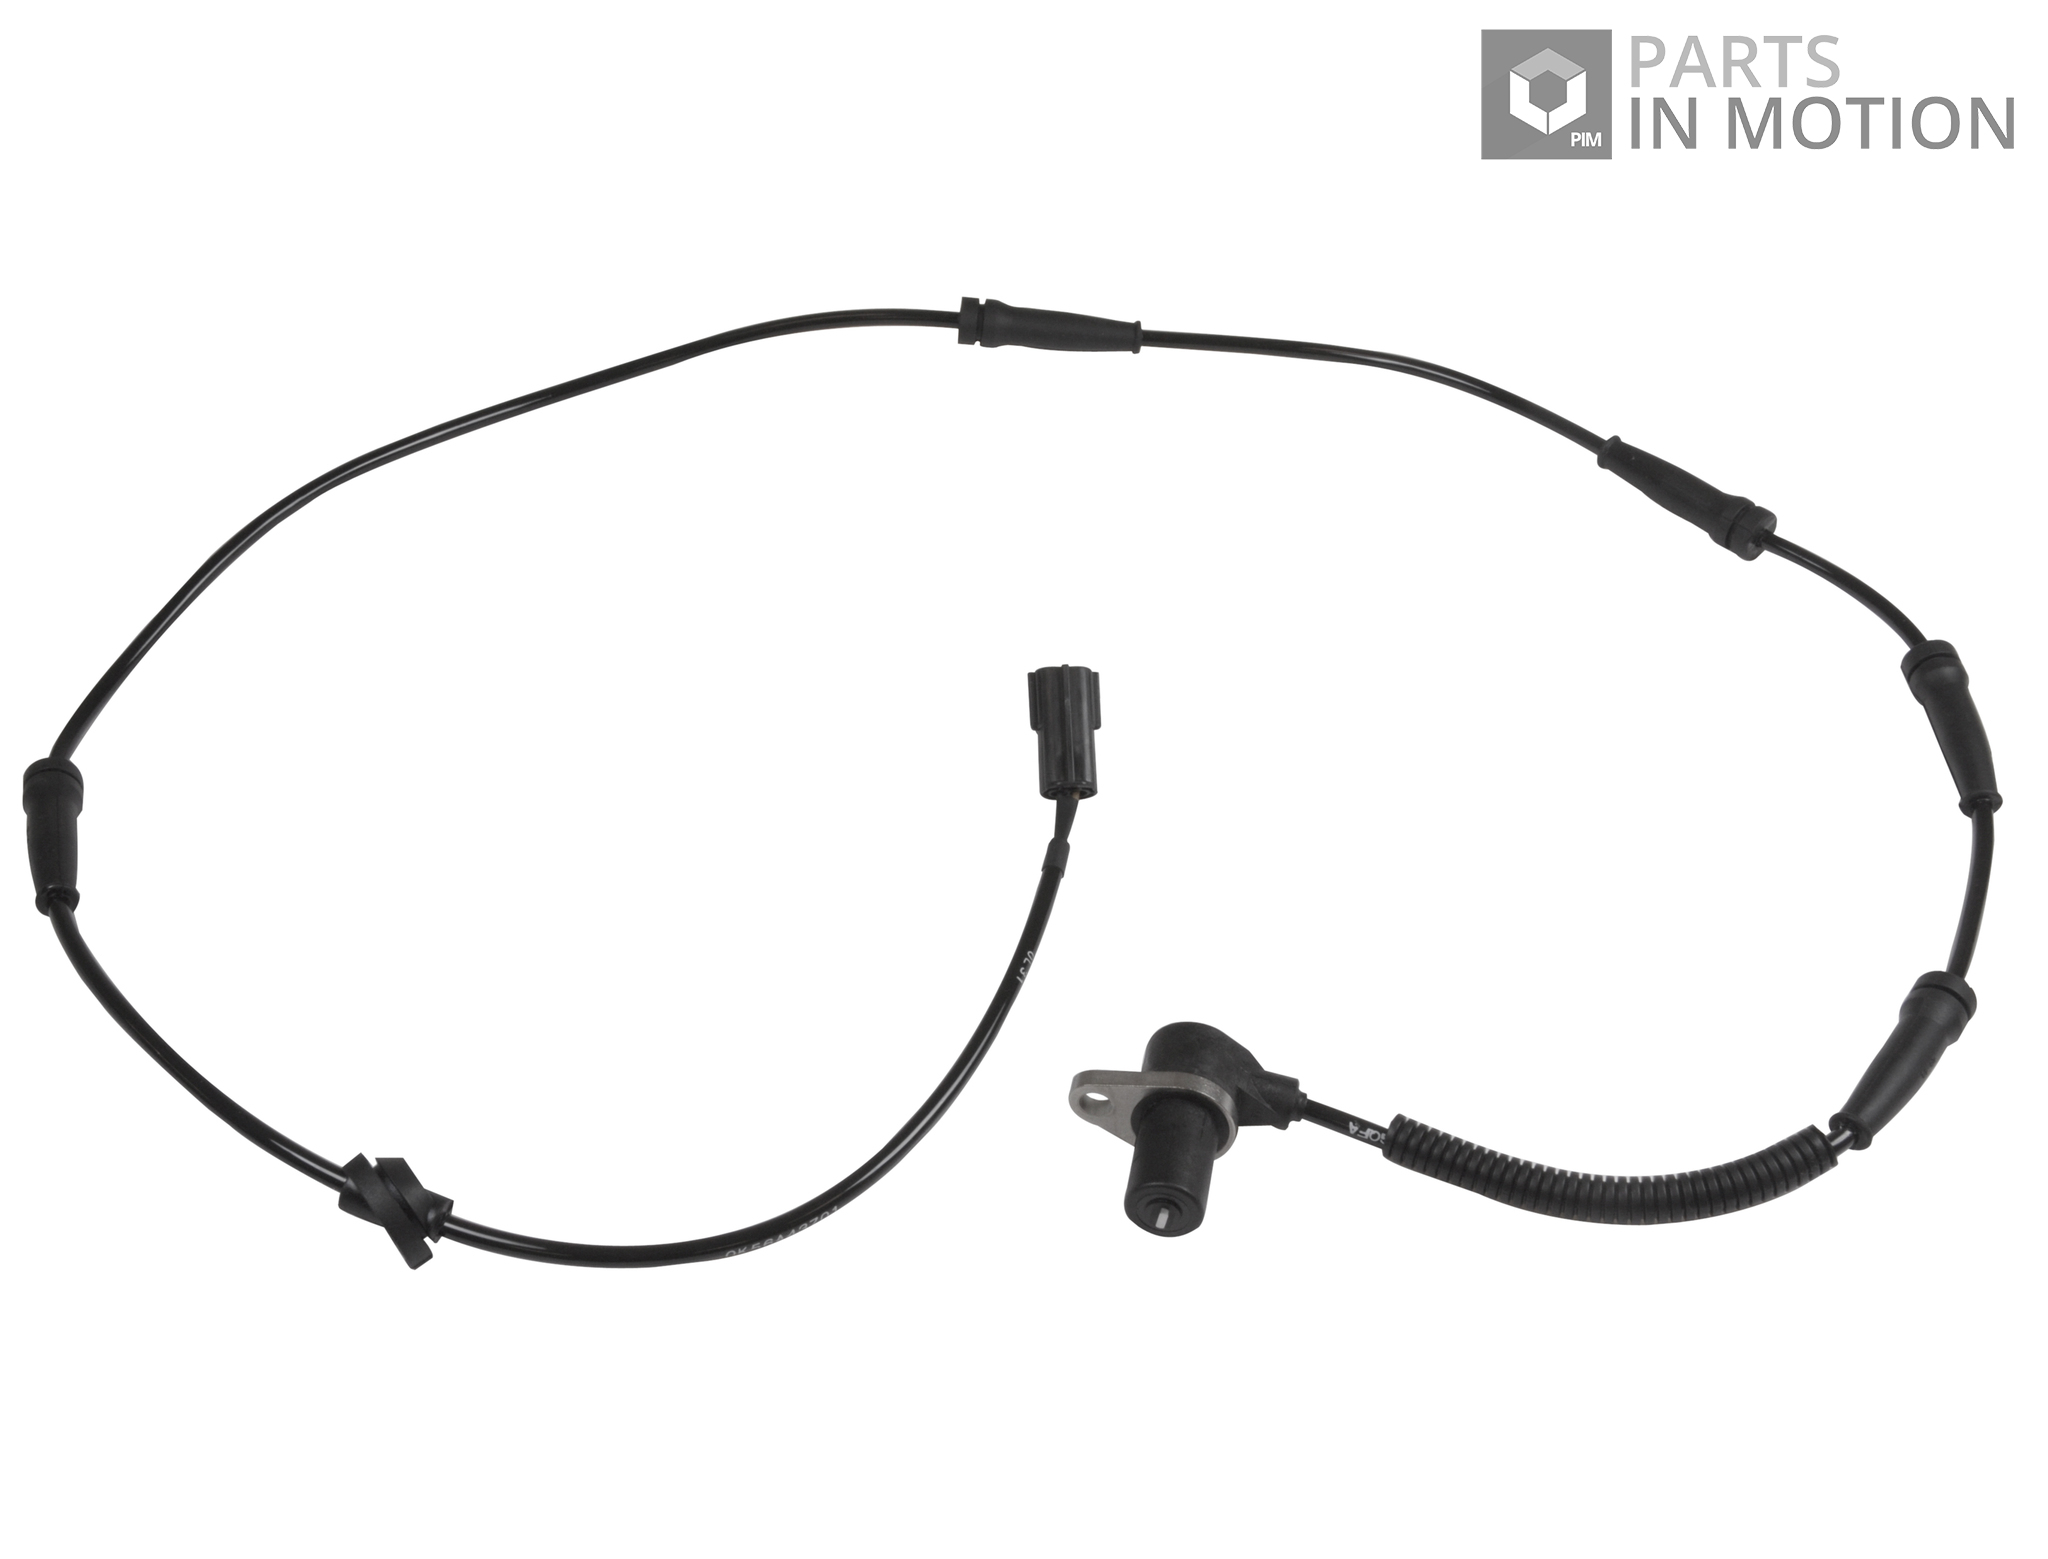 Abs Sensor Fits Kia Sedona 2 9d Front On Adg C